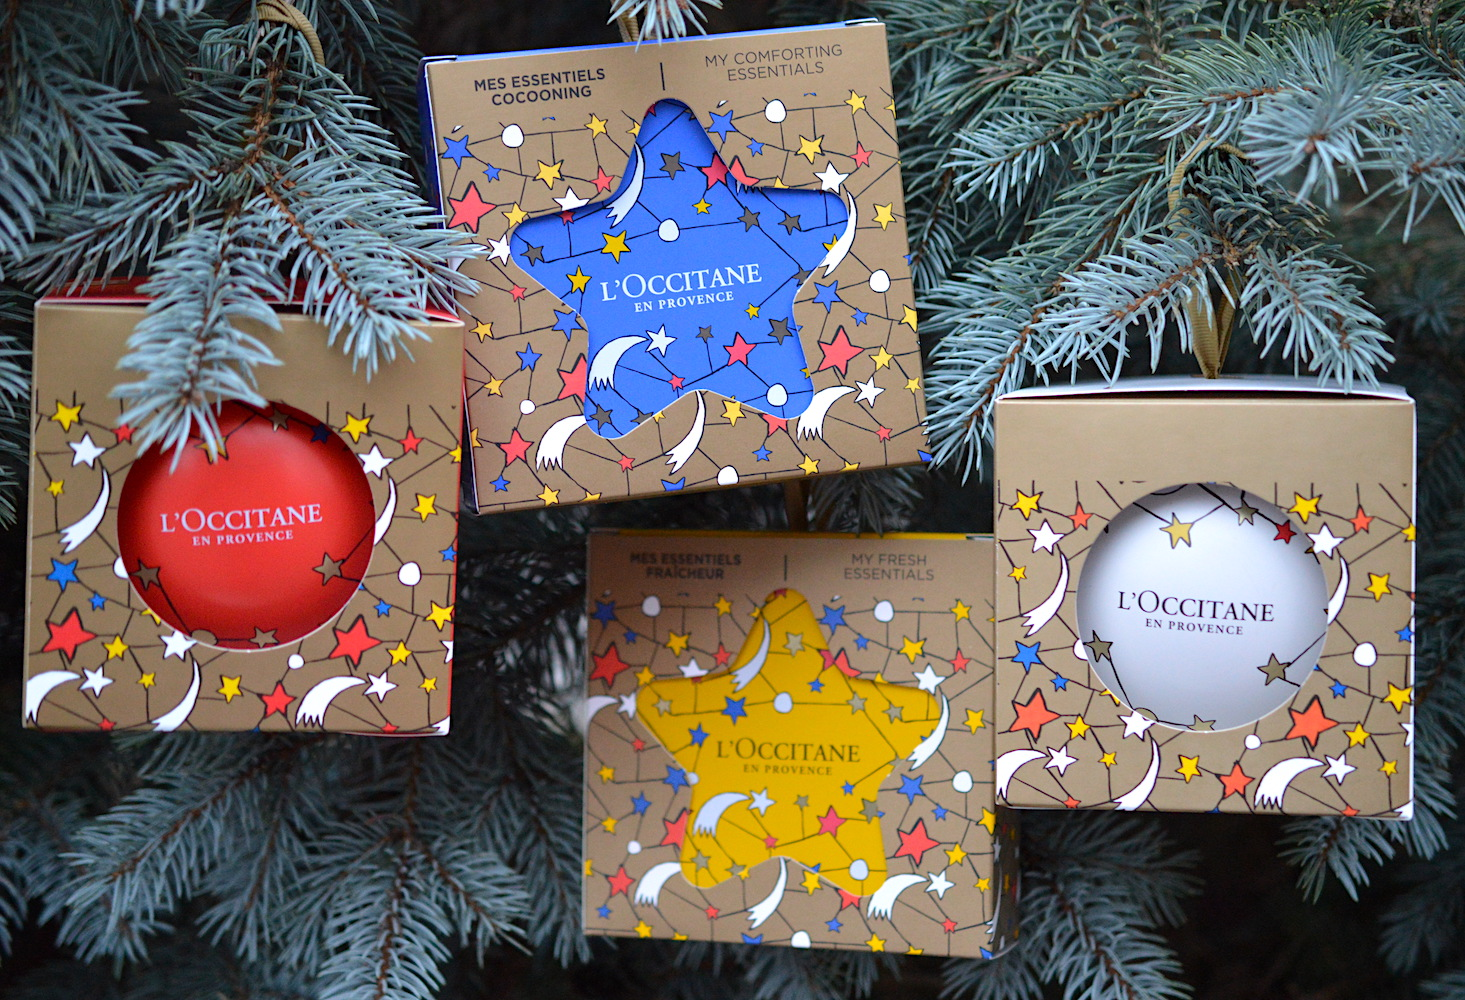 L'OCCITANE ORNAMENTS